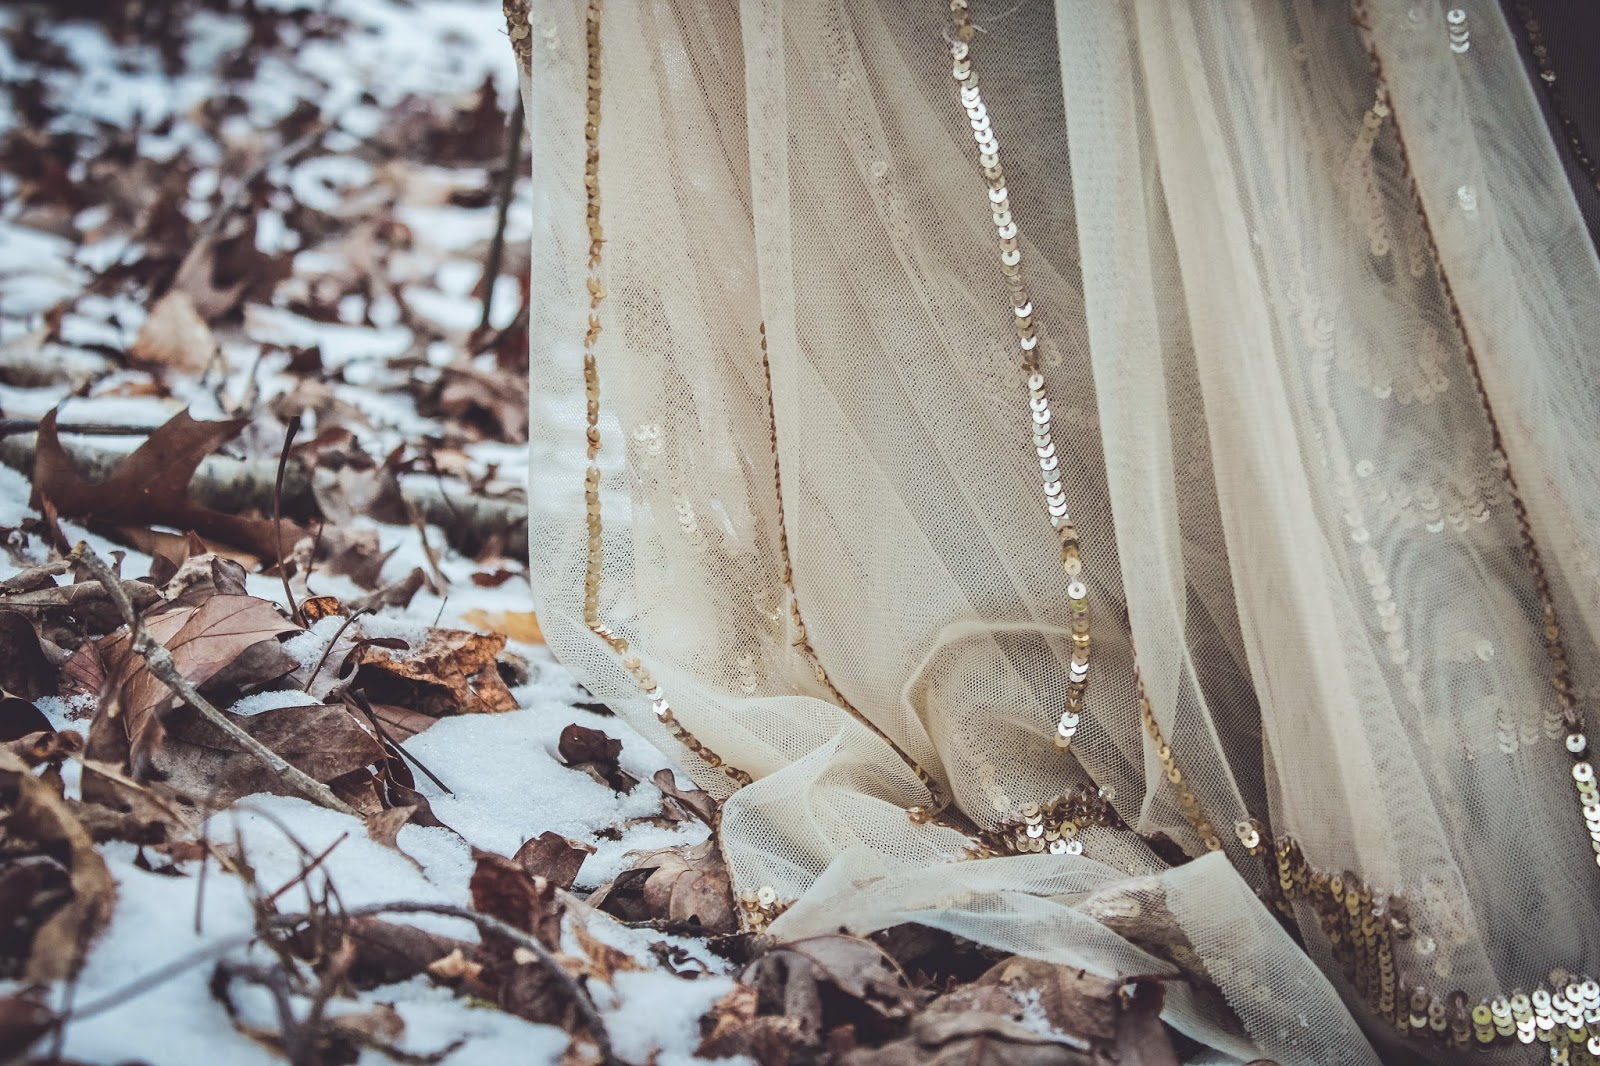 are we out of the woods yet snow georgia outdoors winter photography trees whimsical princess skirt dress sparkle leaves